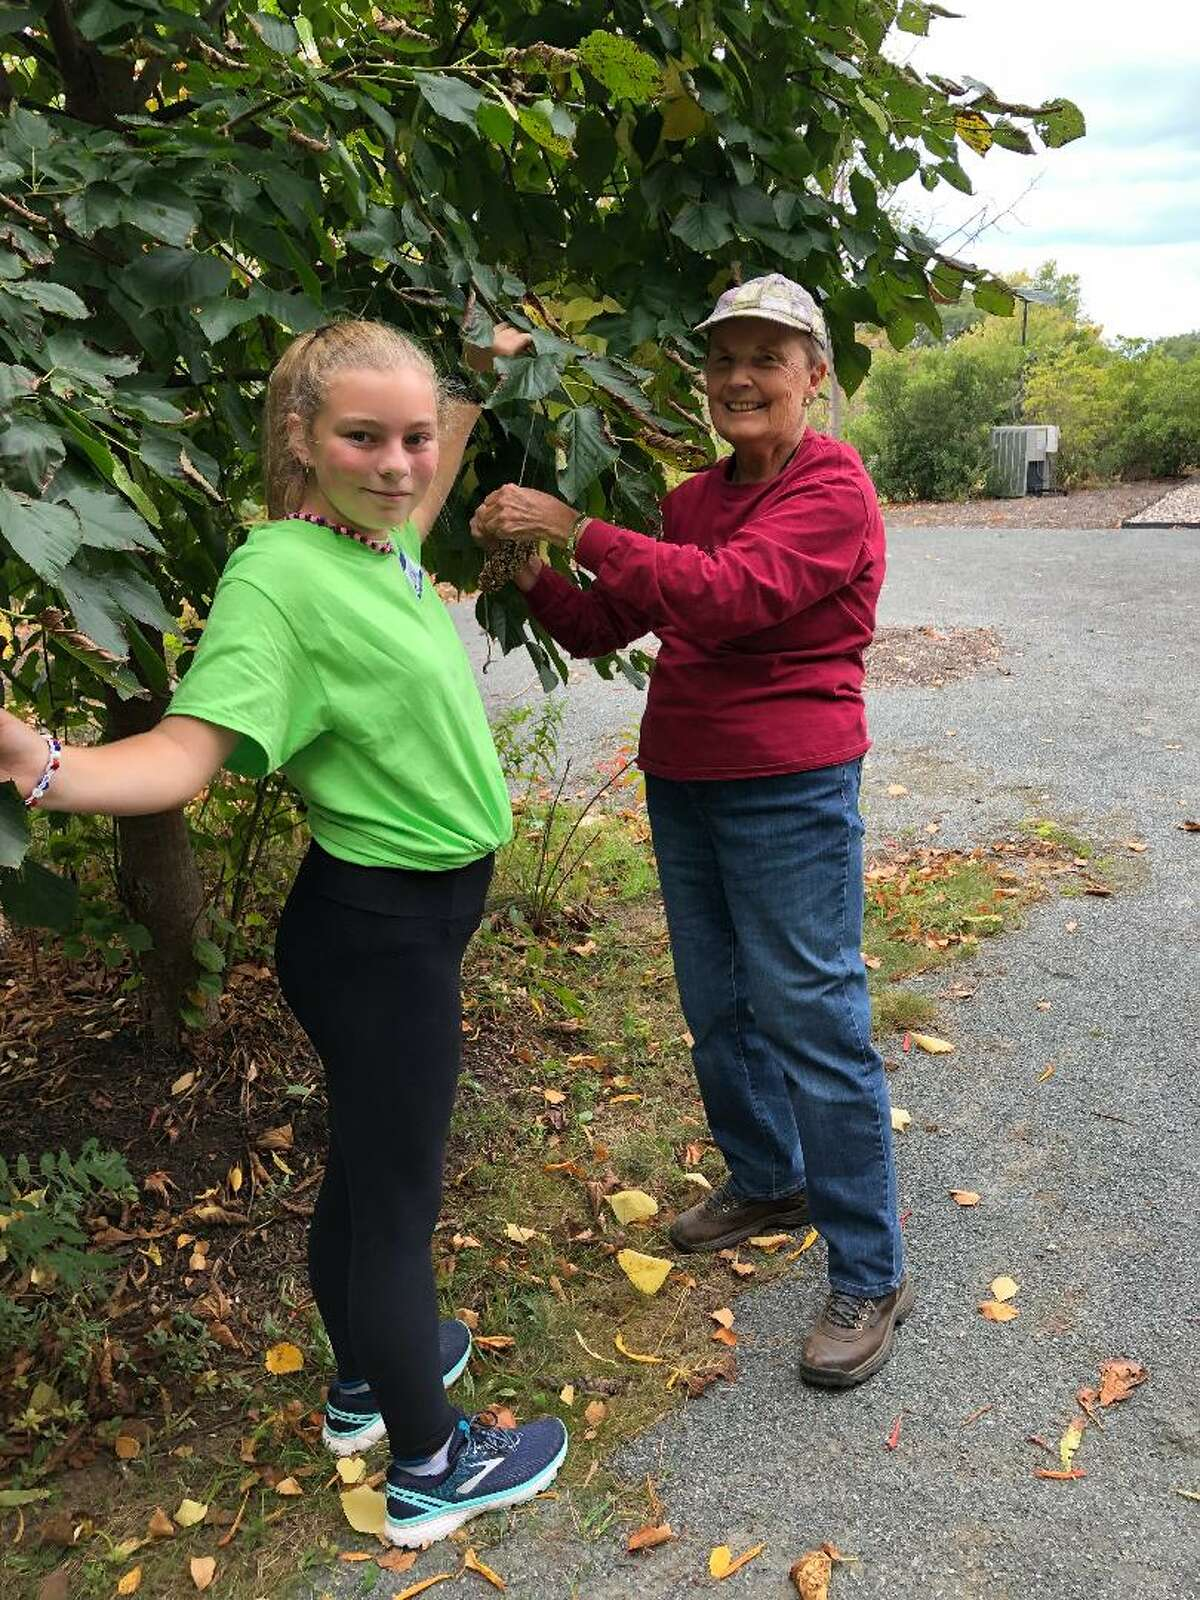 A Rensselaer City School District student and a HVCC Center for Creative Retirement participant choose just the right spot to place a pine cone bird feeder they made together at the BASF Nature Center during its 2nd Annual Inter-generational Nature Day. (Fran Pilato)